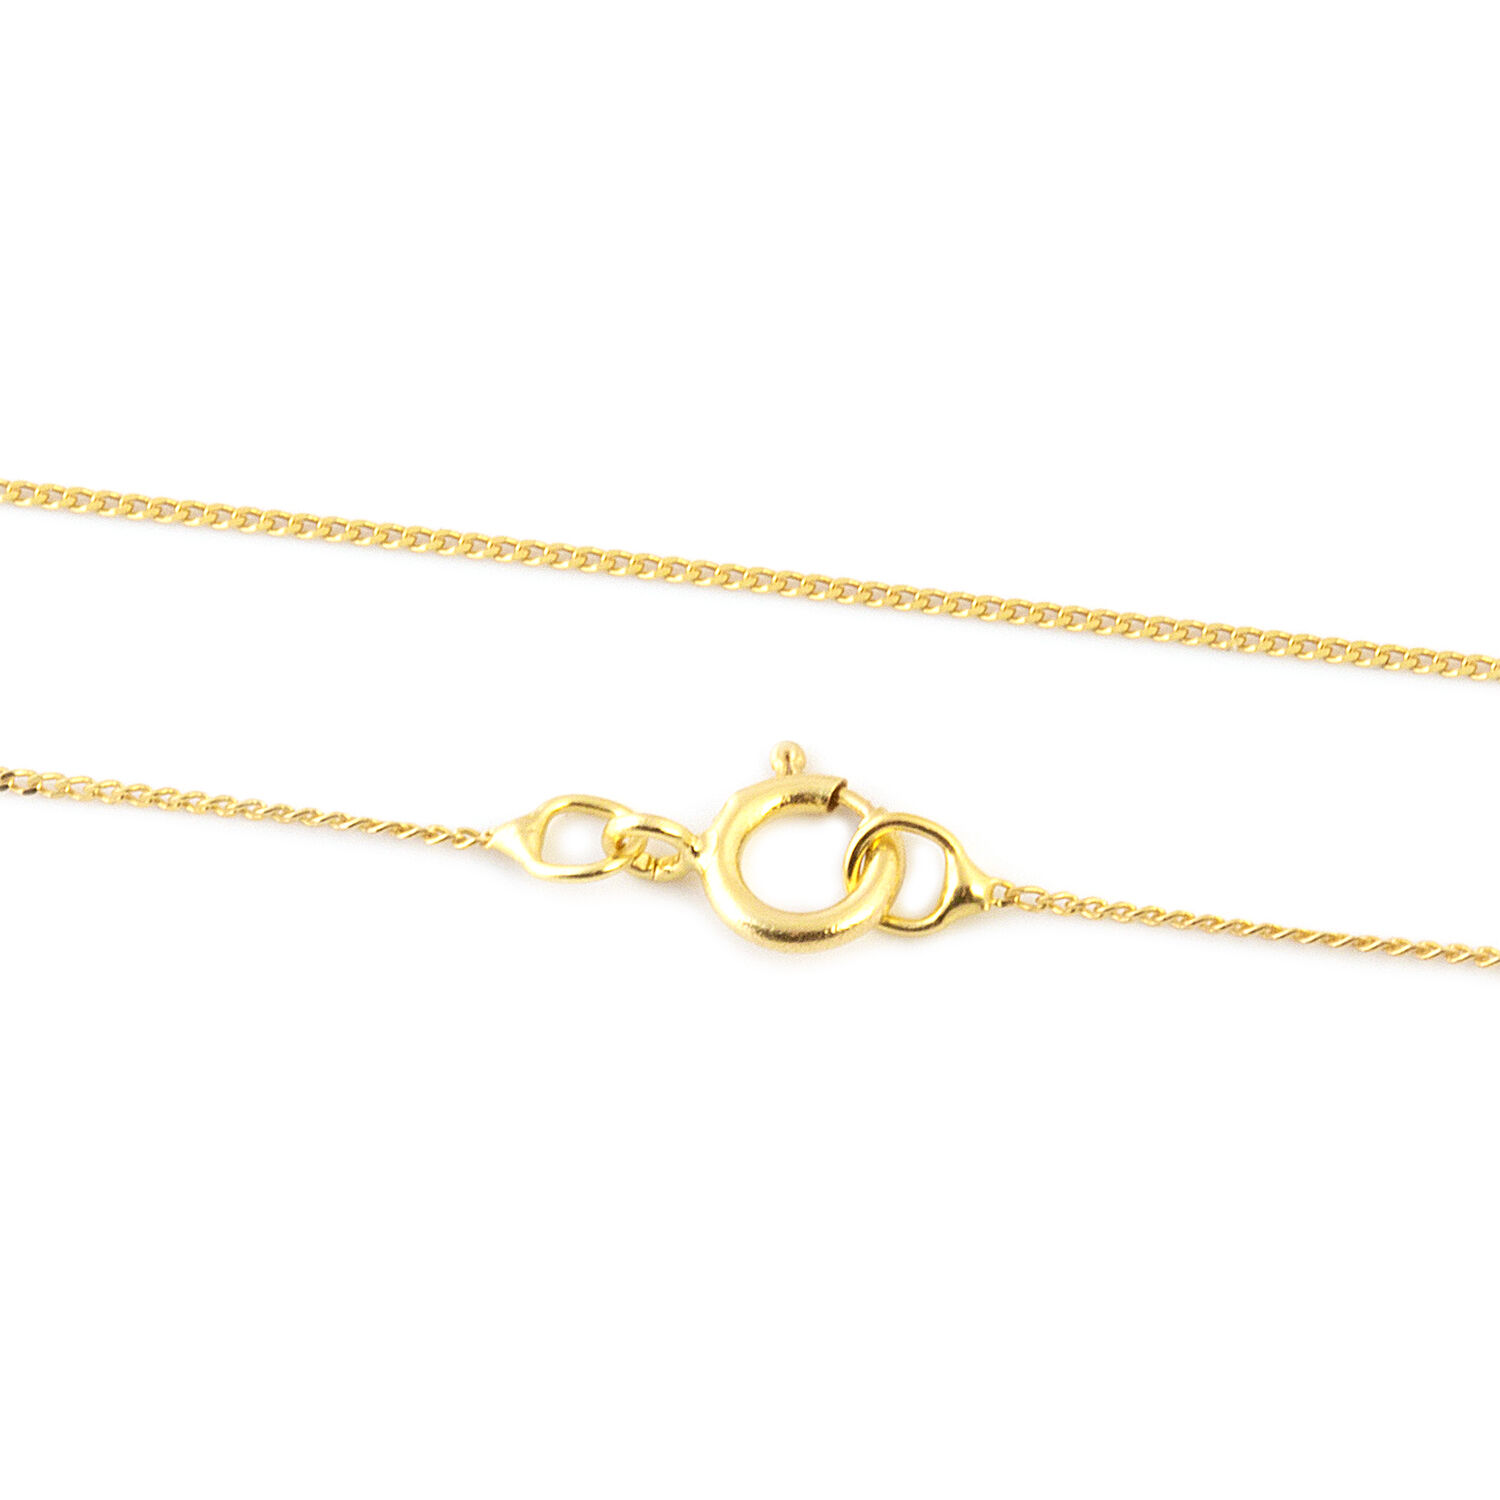 Jewelry & Watches Italian 925 Silver Yellow Gold Plated Diamond Cut Rock Chain Necklace 30ins Aesthetic Appearance